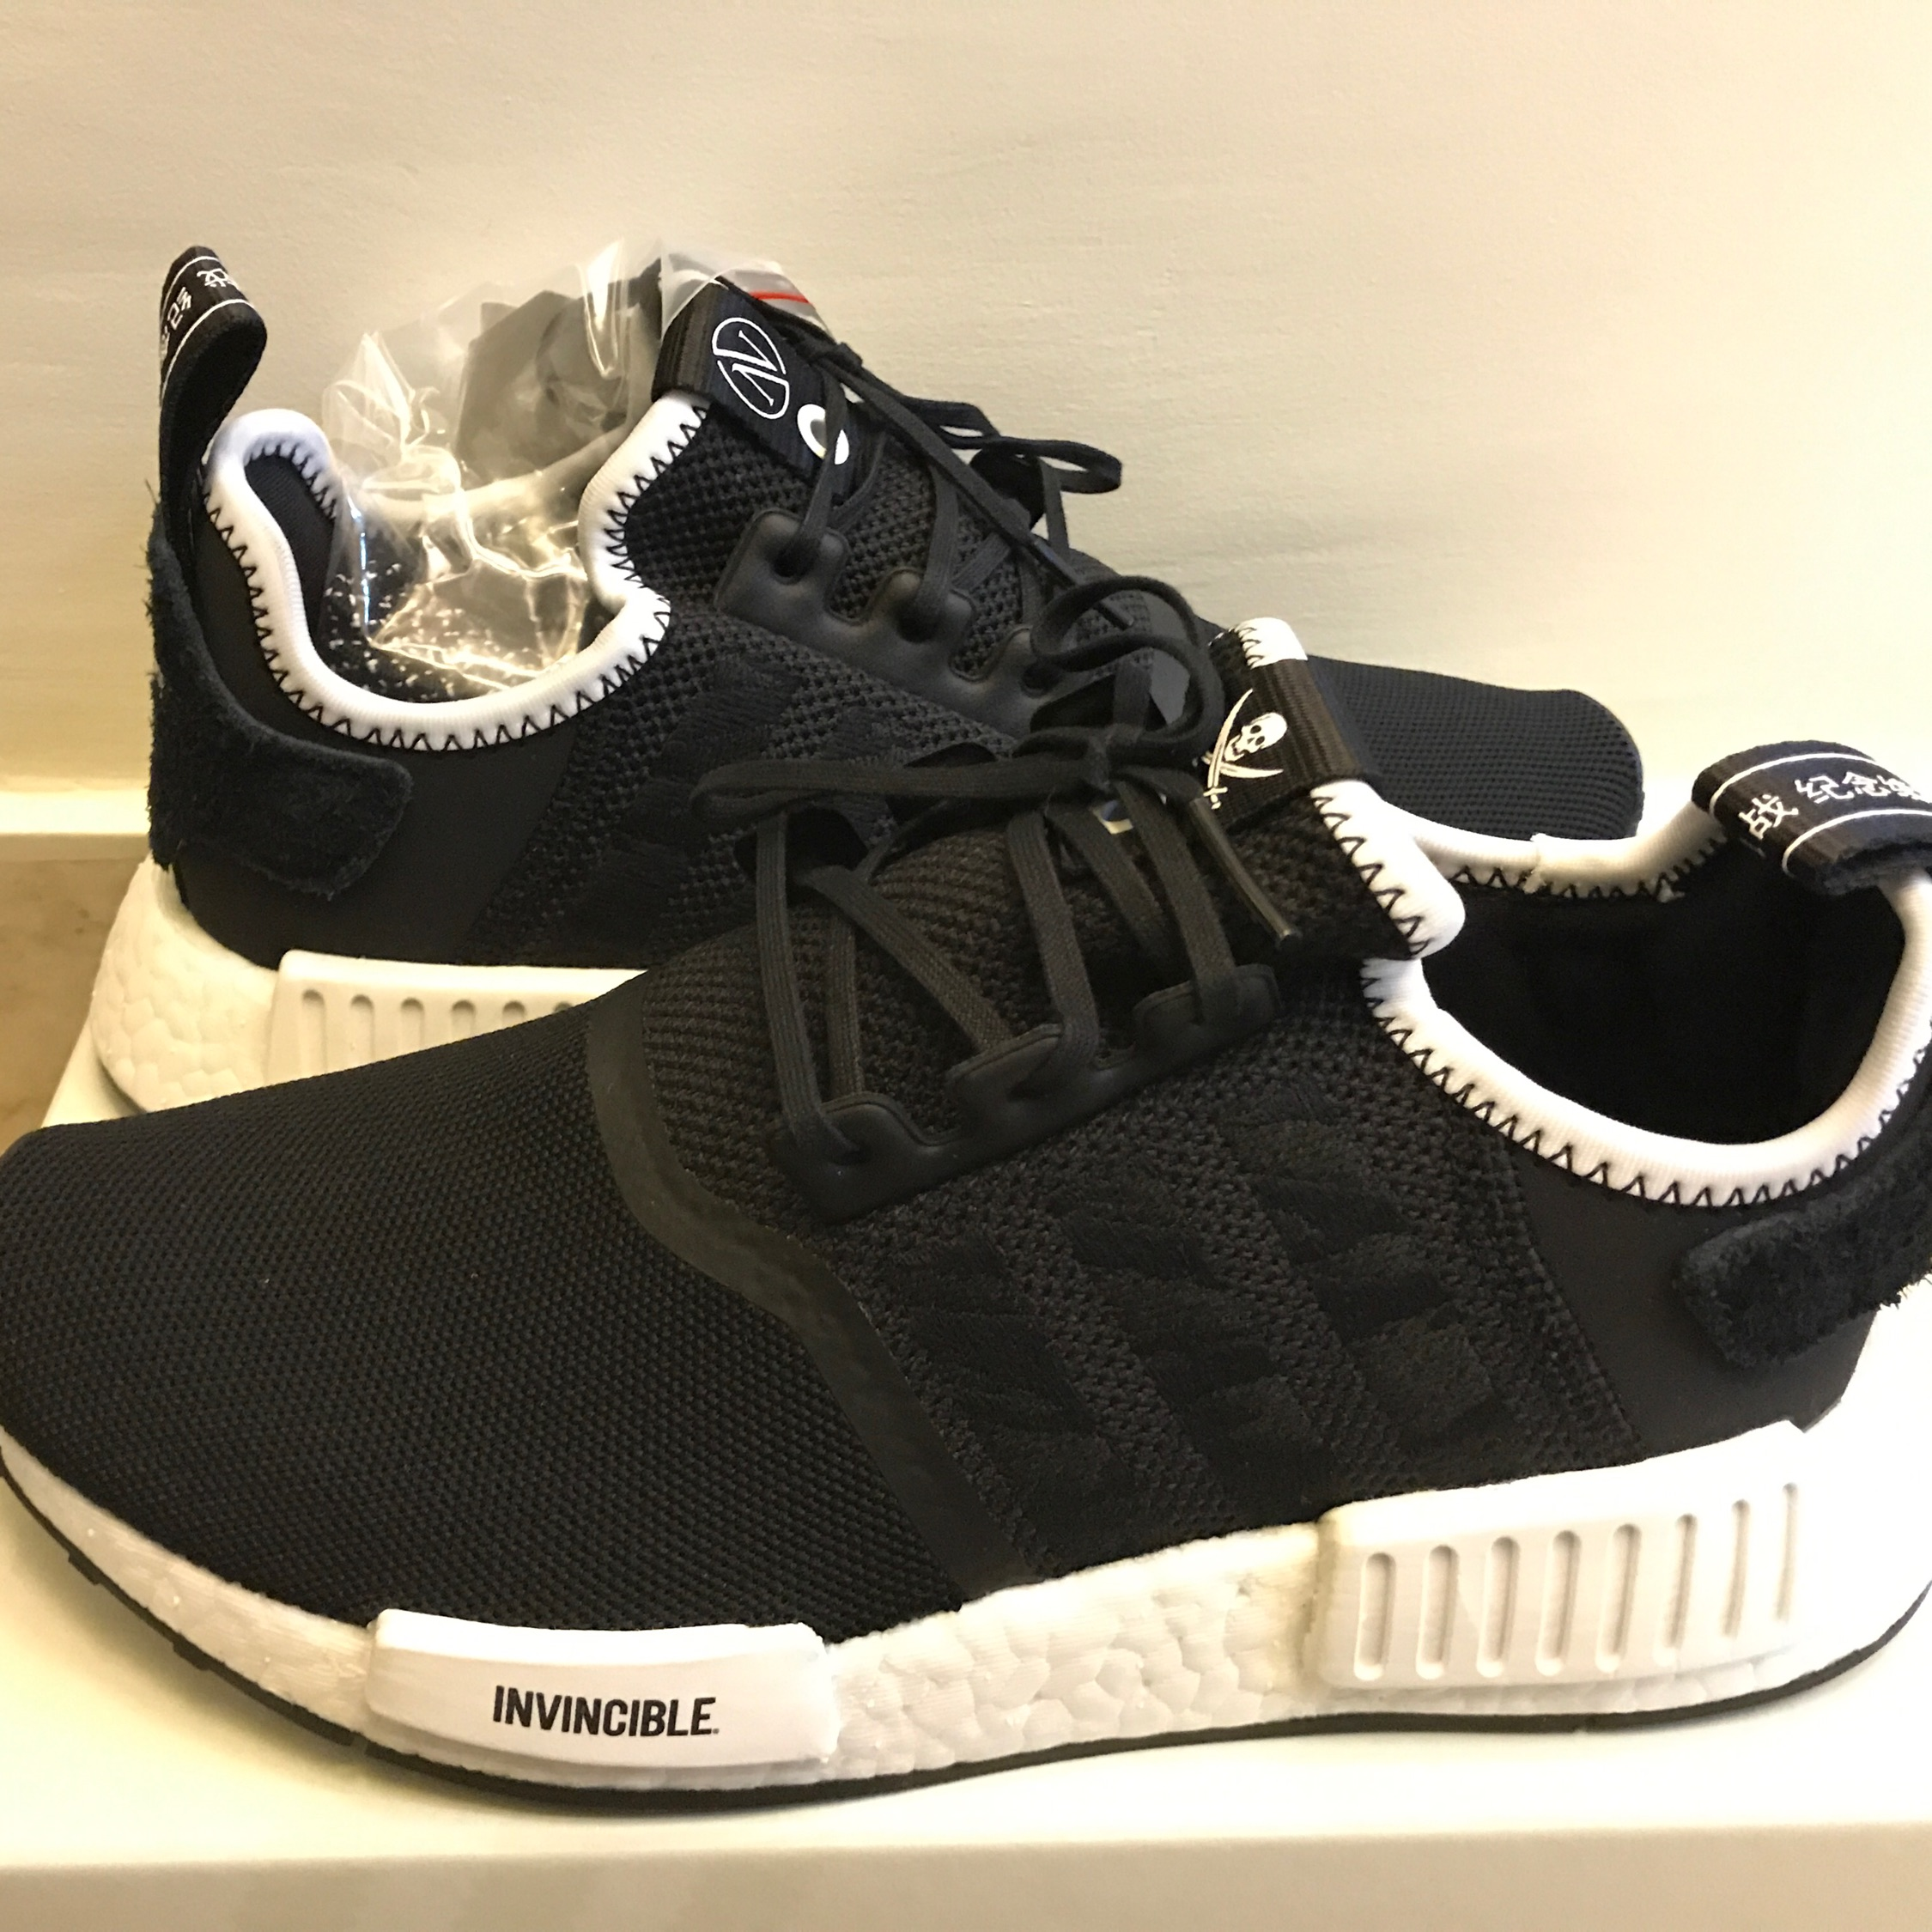 newest 3b177 a6c1c Adidas Invincible X Neighborhood Nmd R1 Size 5 Us